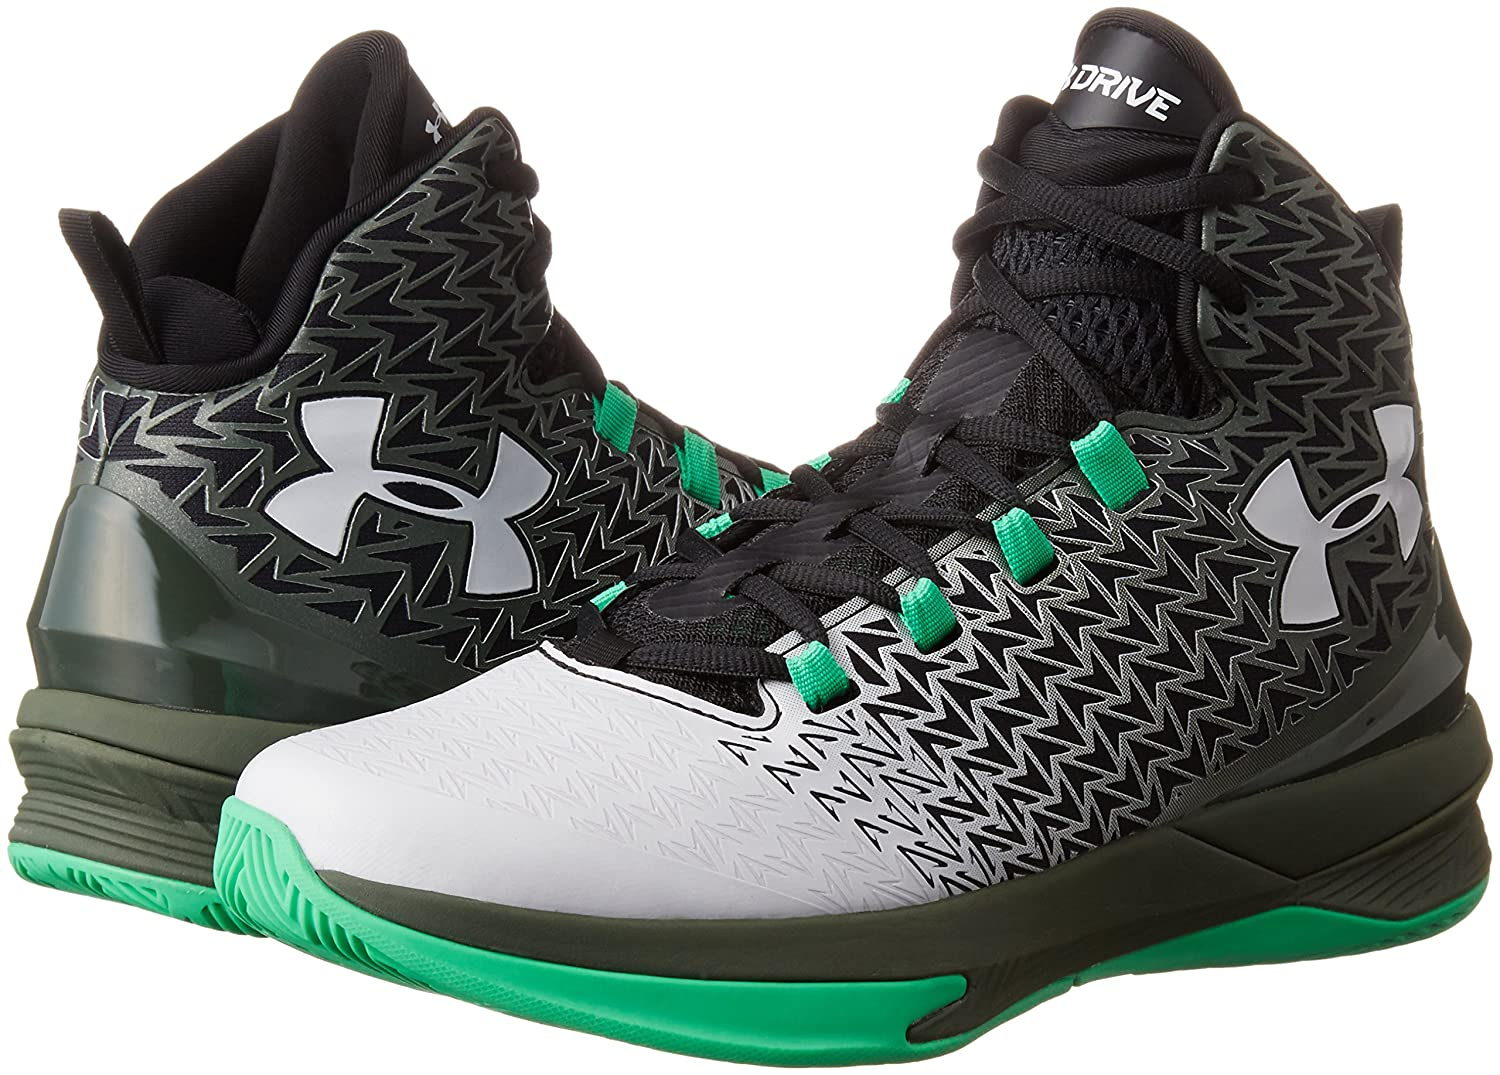 Under Armour Men's Clutchfit Drive 3 Basketball Shoe: Amazon.co.uk: Sports  & Outdoors